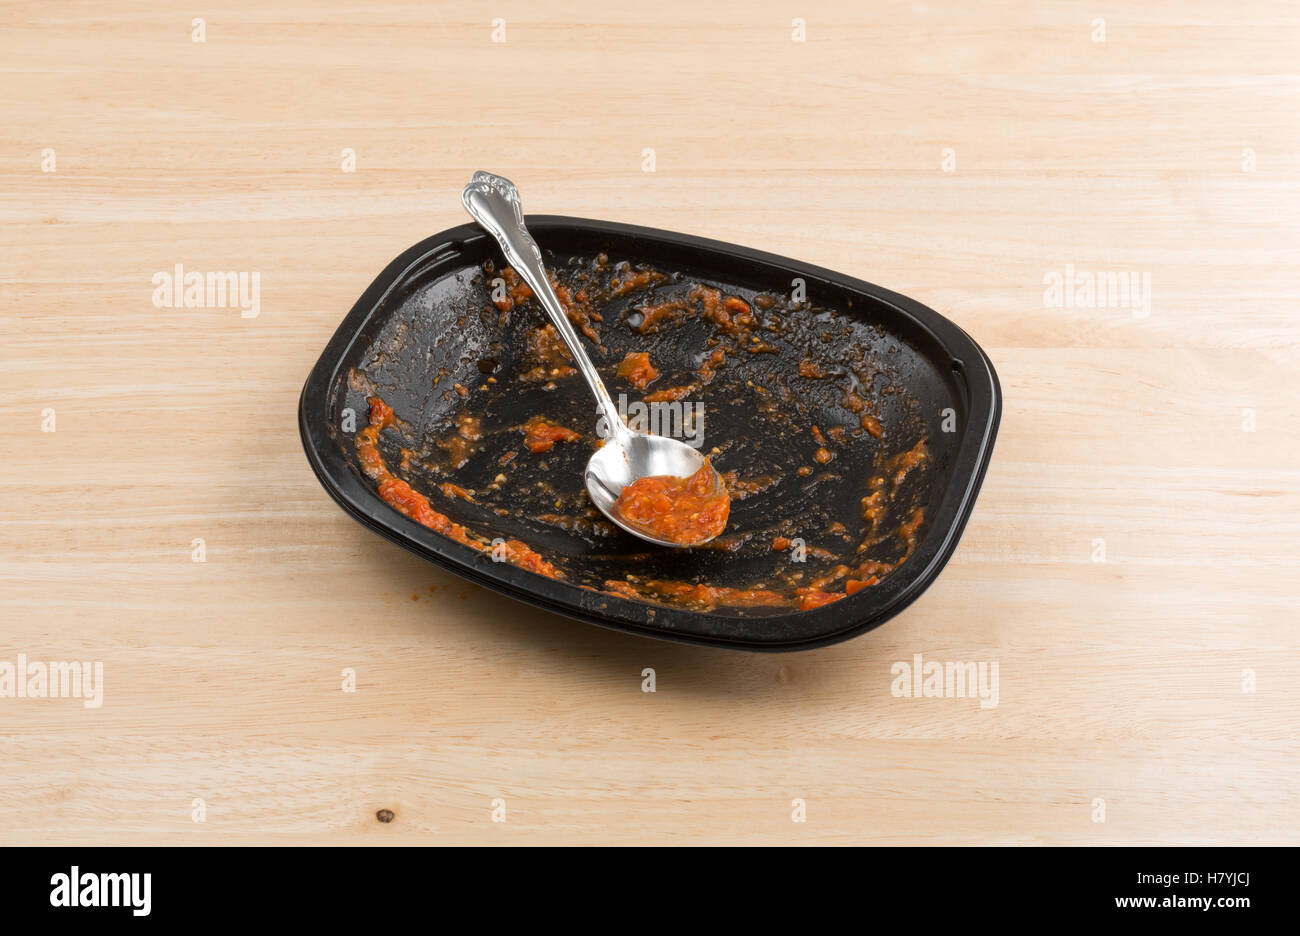 A spoon with a tomato and cheese sauce on a finished black TV dinner tray atop a wood table. - Stock Image